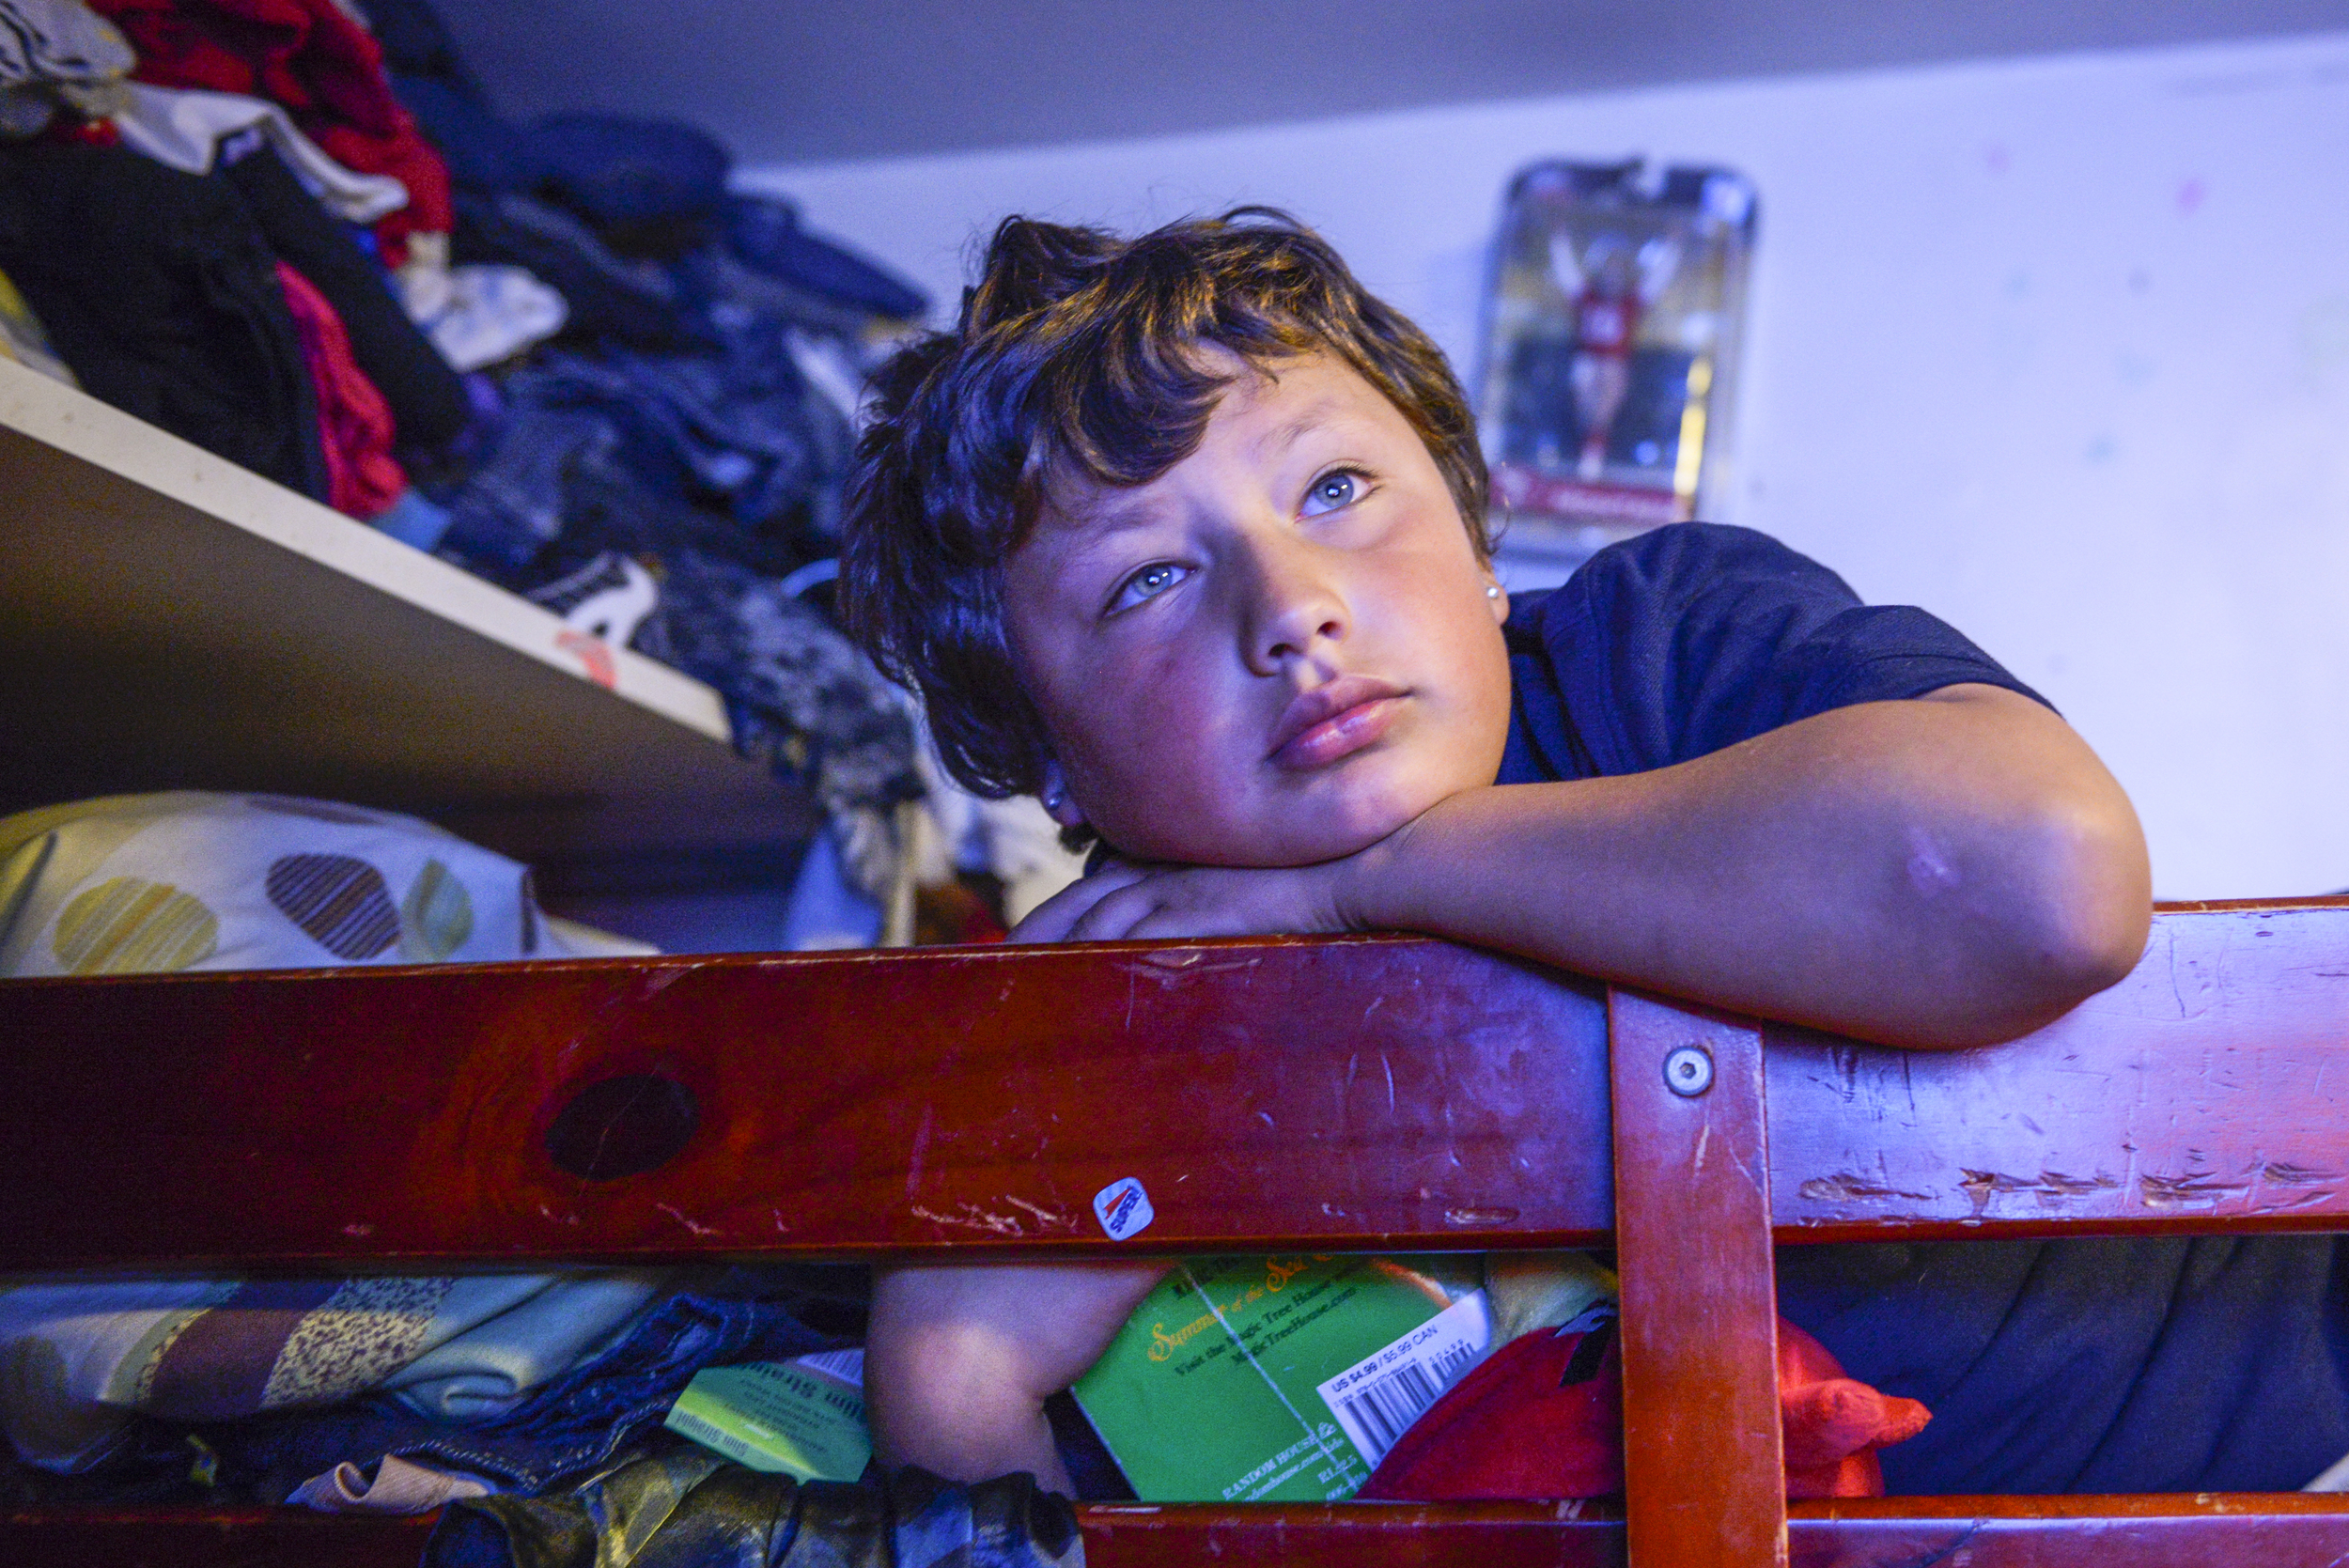 Christopher, 8, watches TV. He has been diagnosed with ADHD.